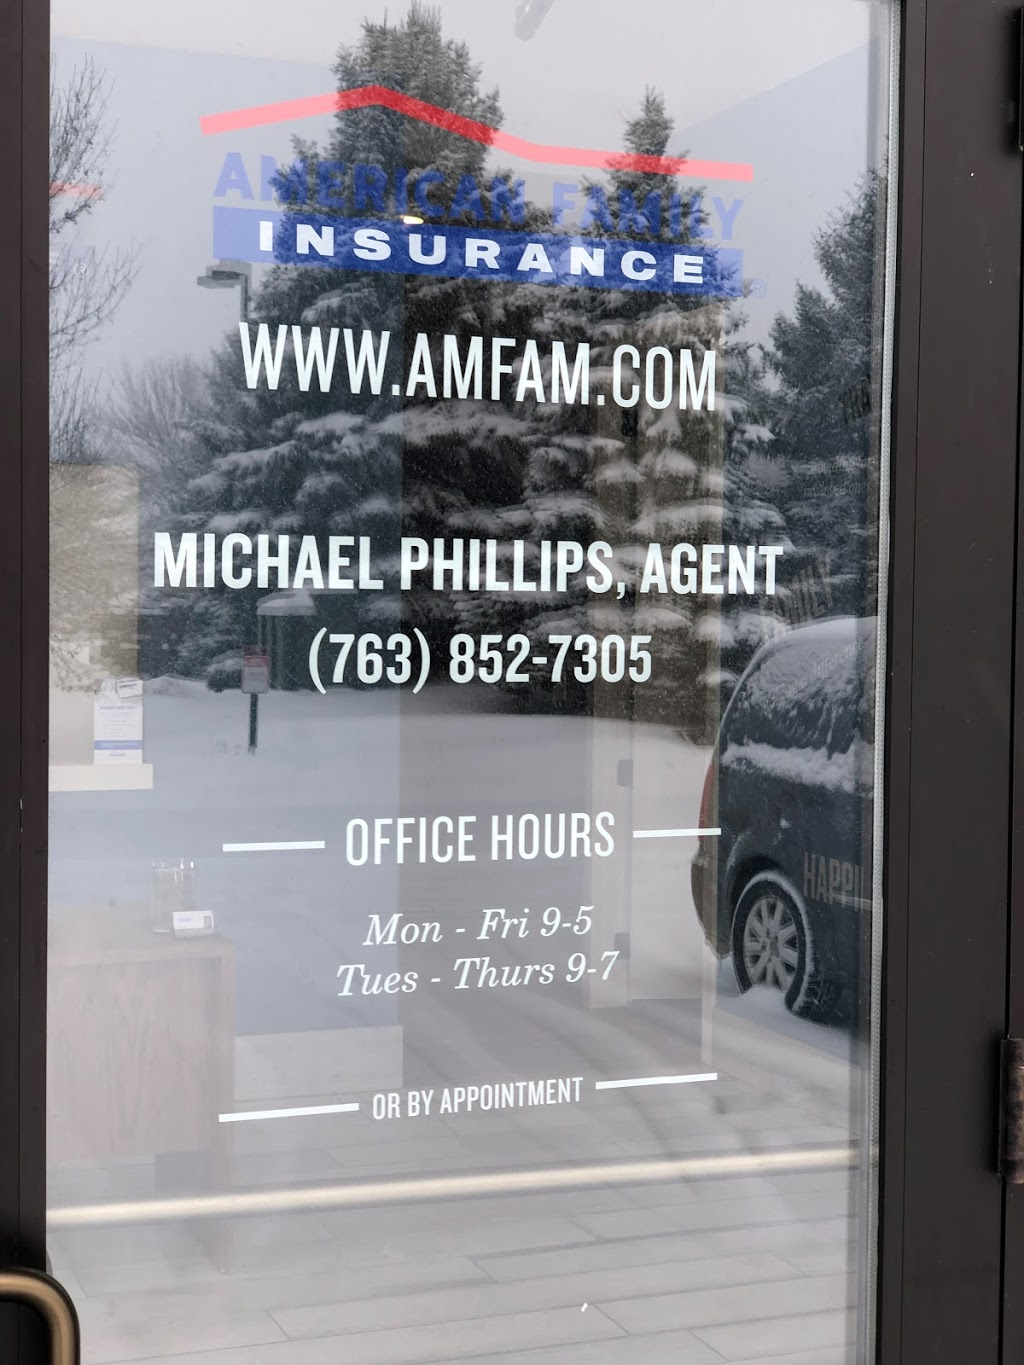 American Family Insurance - Michael Phillips | insurance agency | 6250 Douglas Ct N, Champlin, MN 55316, USA | 7638527305 OR +1 763-852-7305